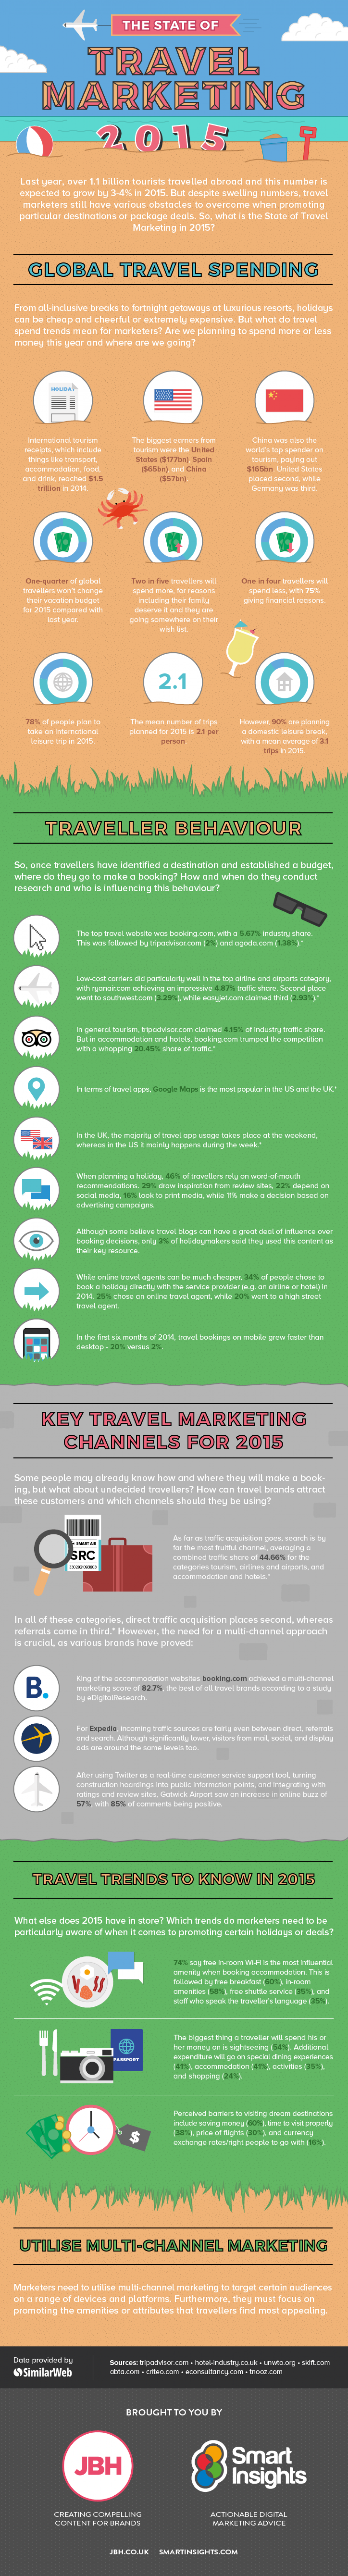 The State of Travel Marketing Infographic